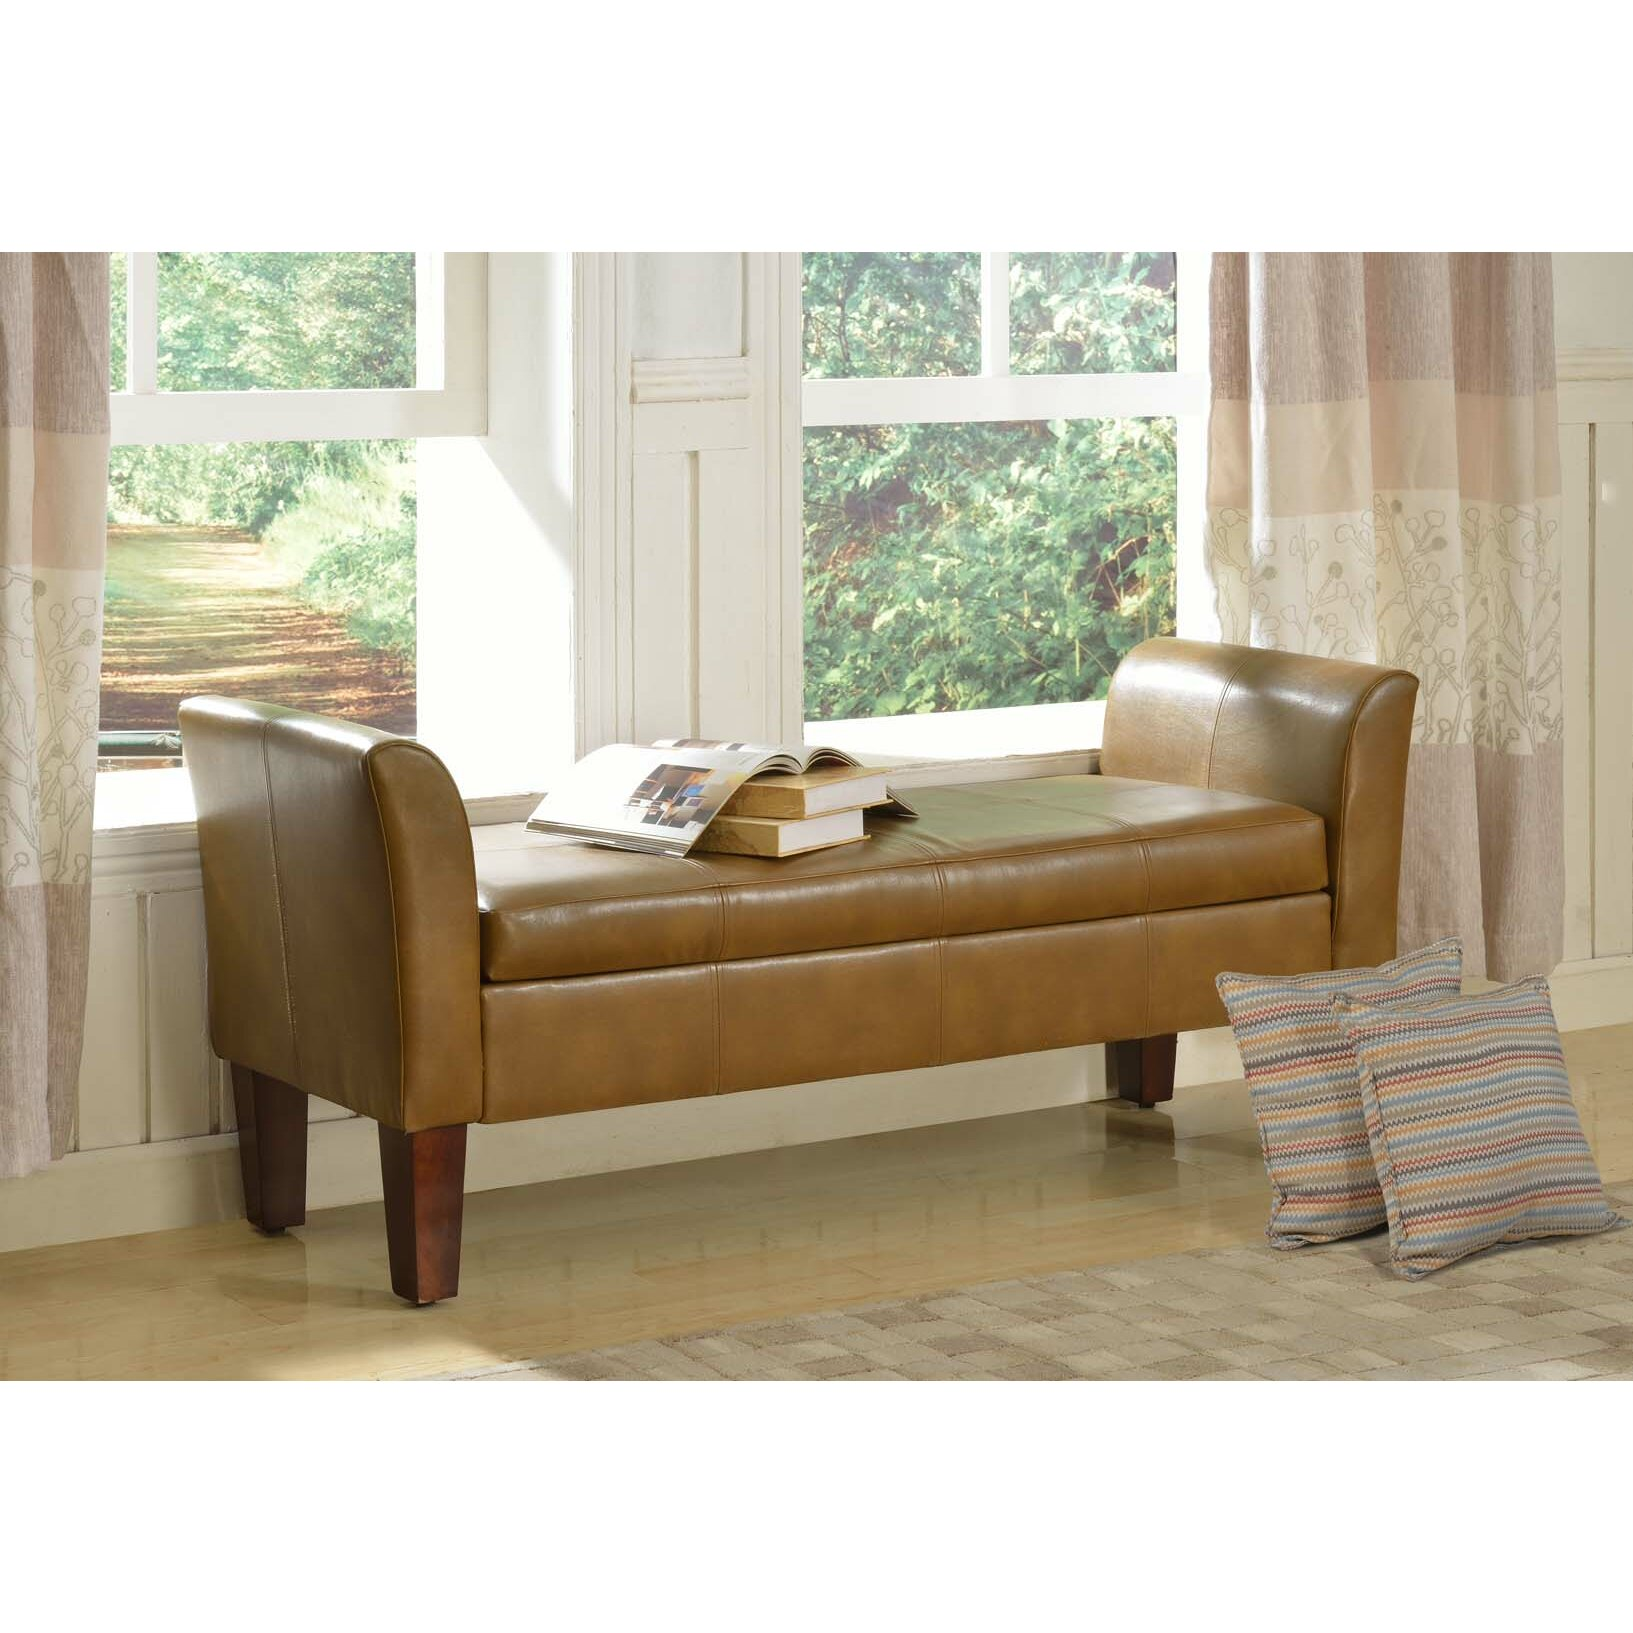 Homepop Storage Bench Reviews: HomePop Two Seat Bench With Storage & Reviews